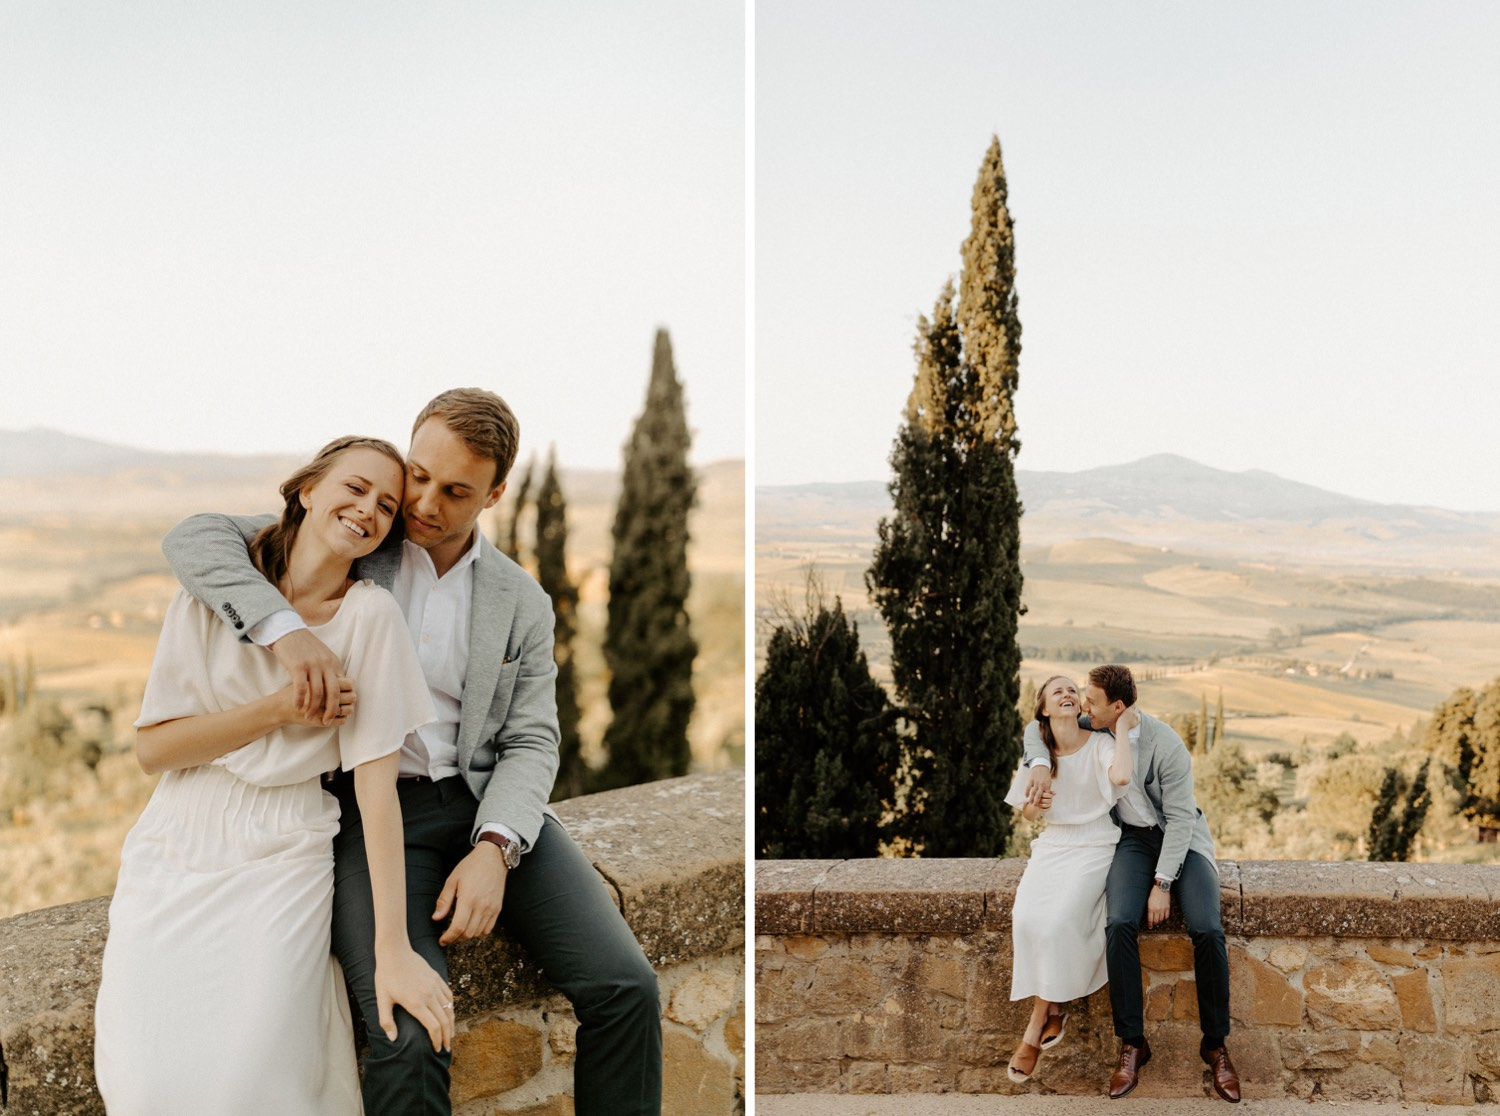 27_ali-dirk-pre-wedding-094_ali-dirk-pre-wedding-090_tuscany_siena_province_wedding_italy_photography.jpg